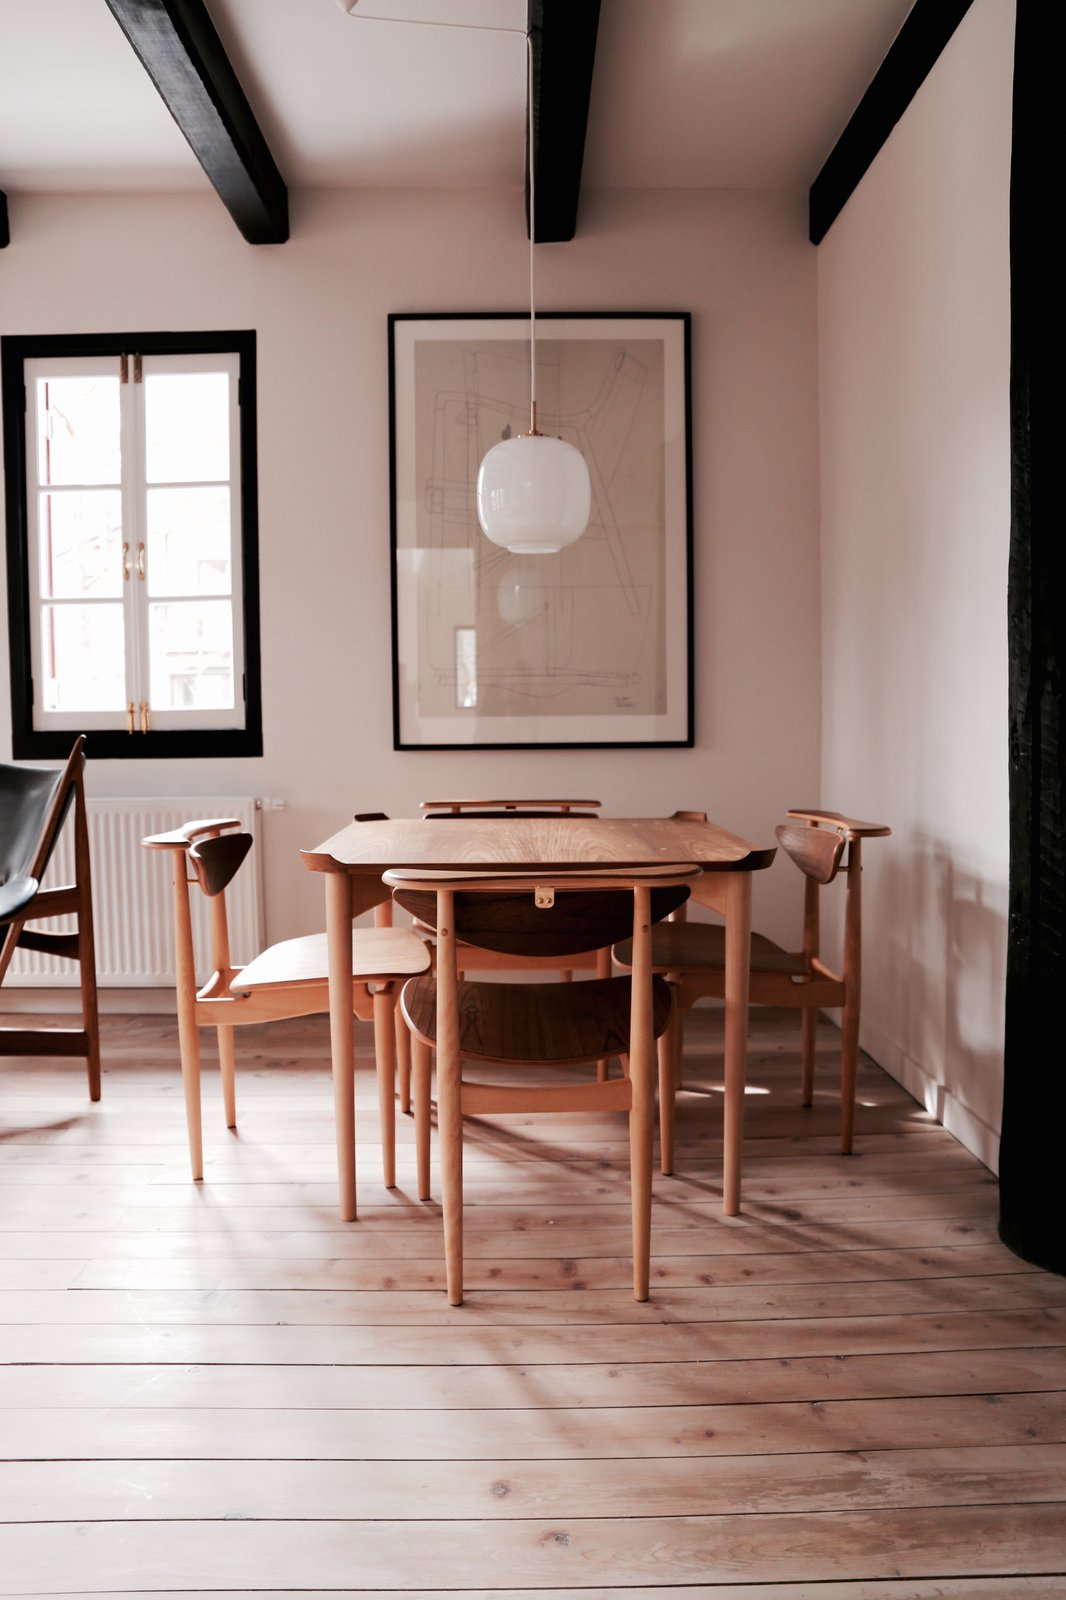 Dining Room, Chair, Table, and Pendant Lighting  Photo 5 of 5 in Finn Juhl Design Hotel Opens in Nagano, Japan